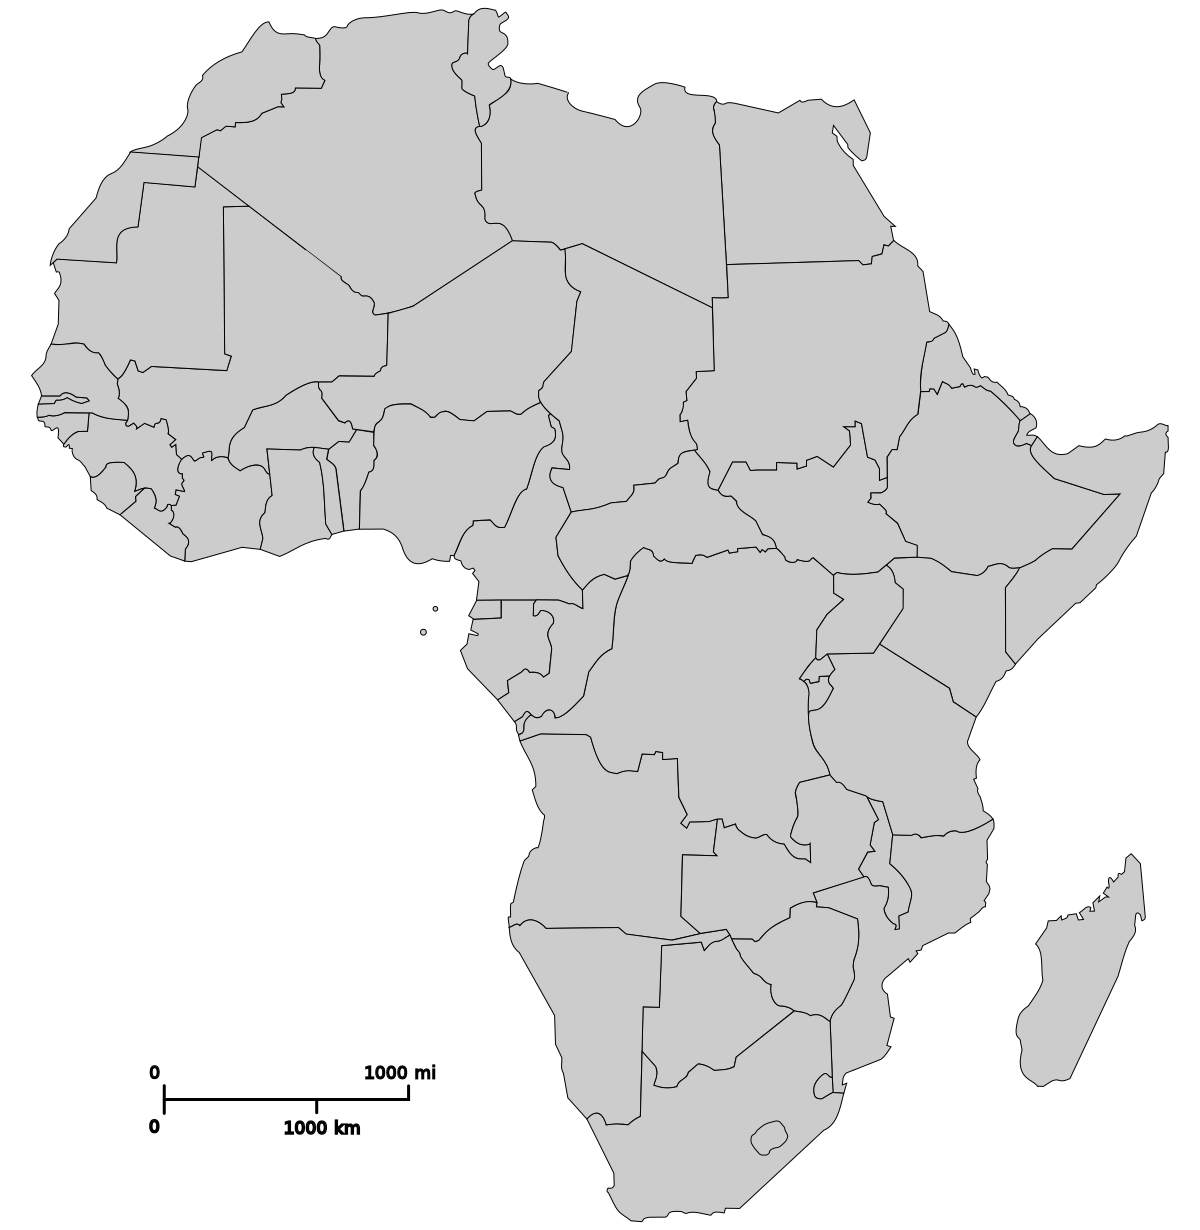 blank map of africa printable blank map african countries diagram outstanding blank africa map of